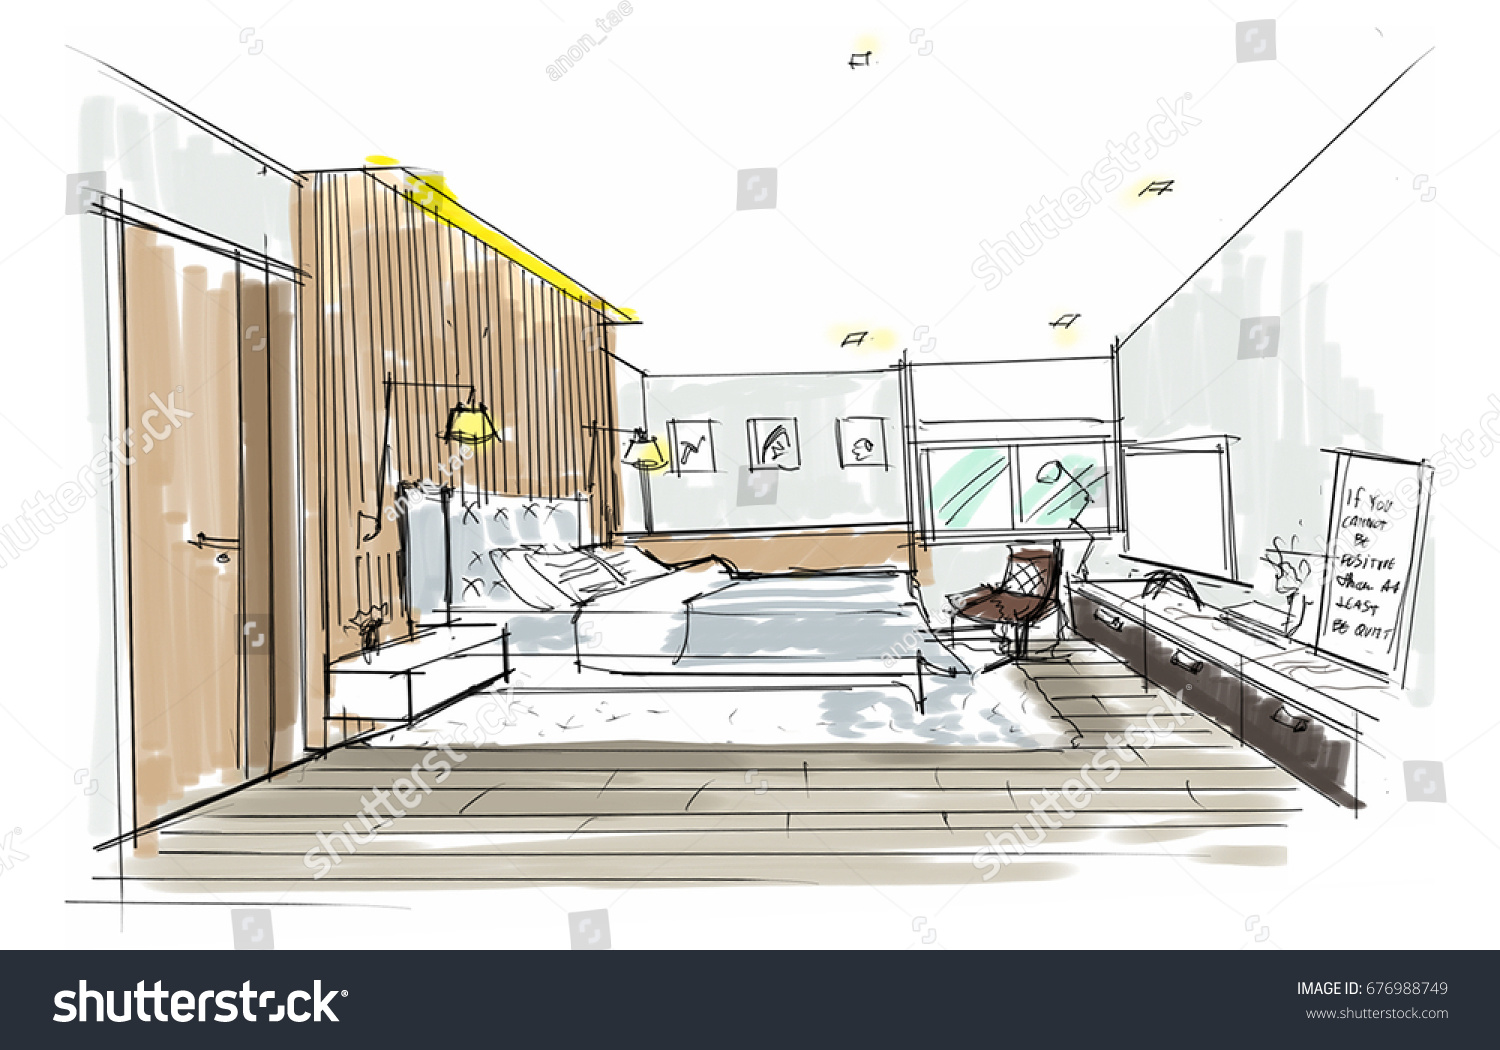 Home Interior Furniture Sofa Armchair Table Stock Illustration ...